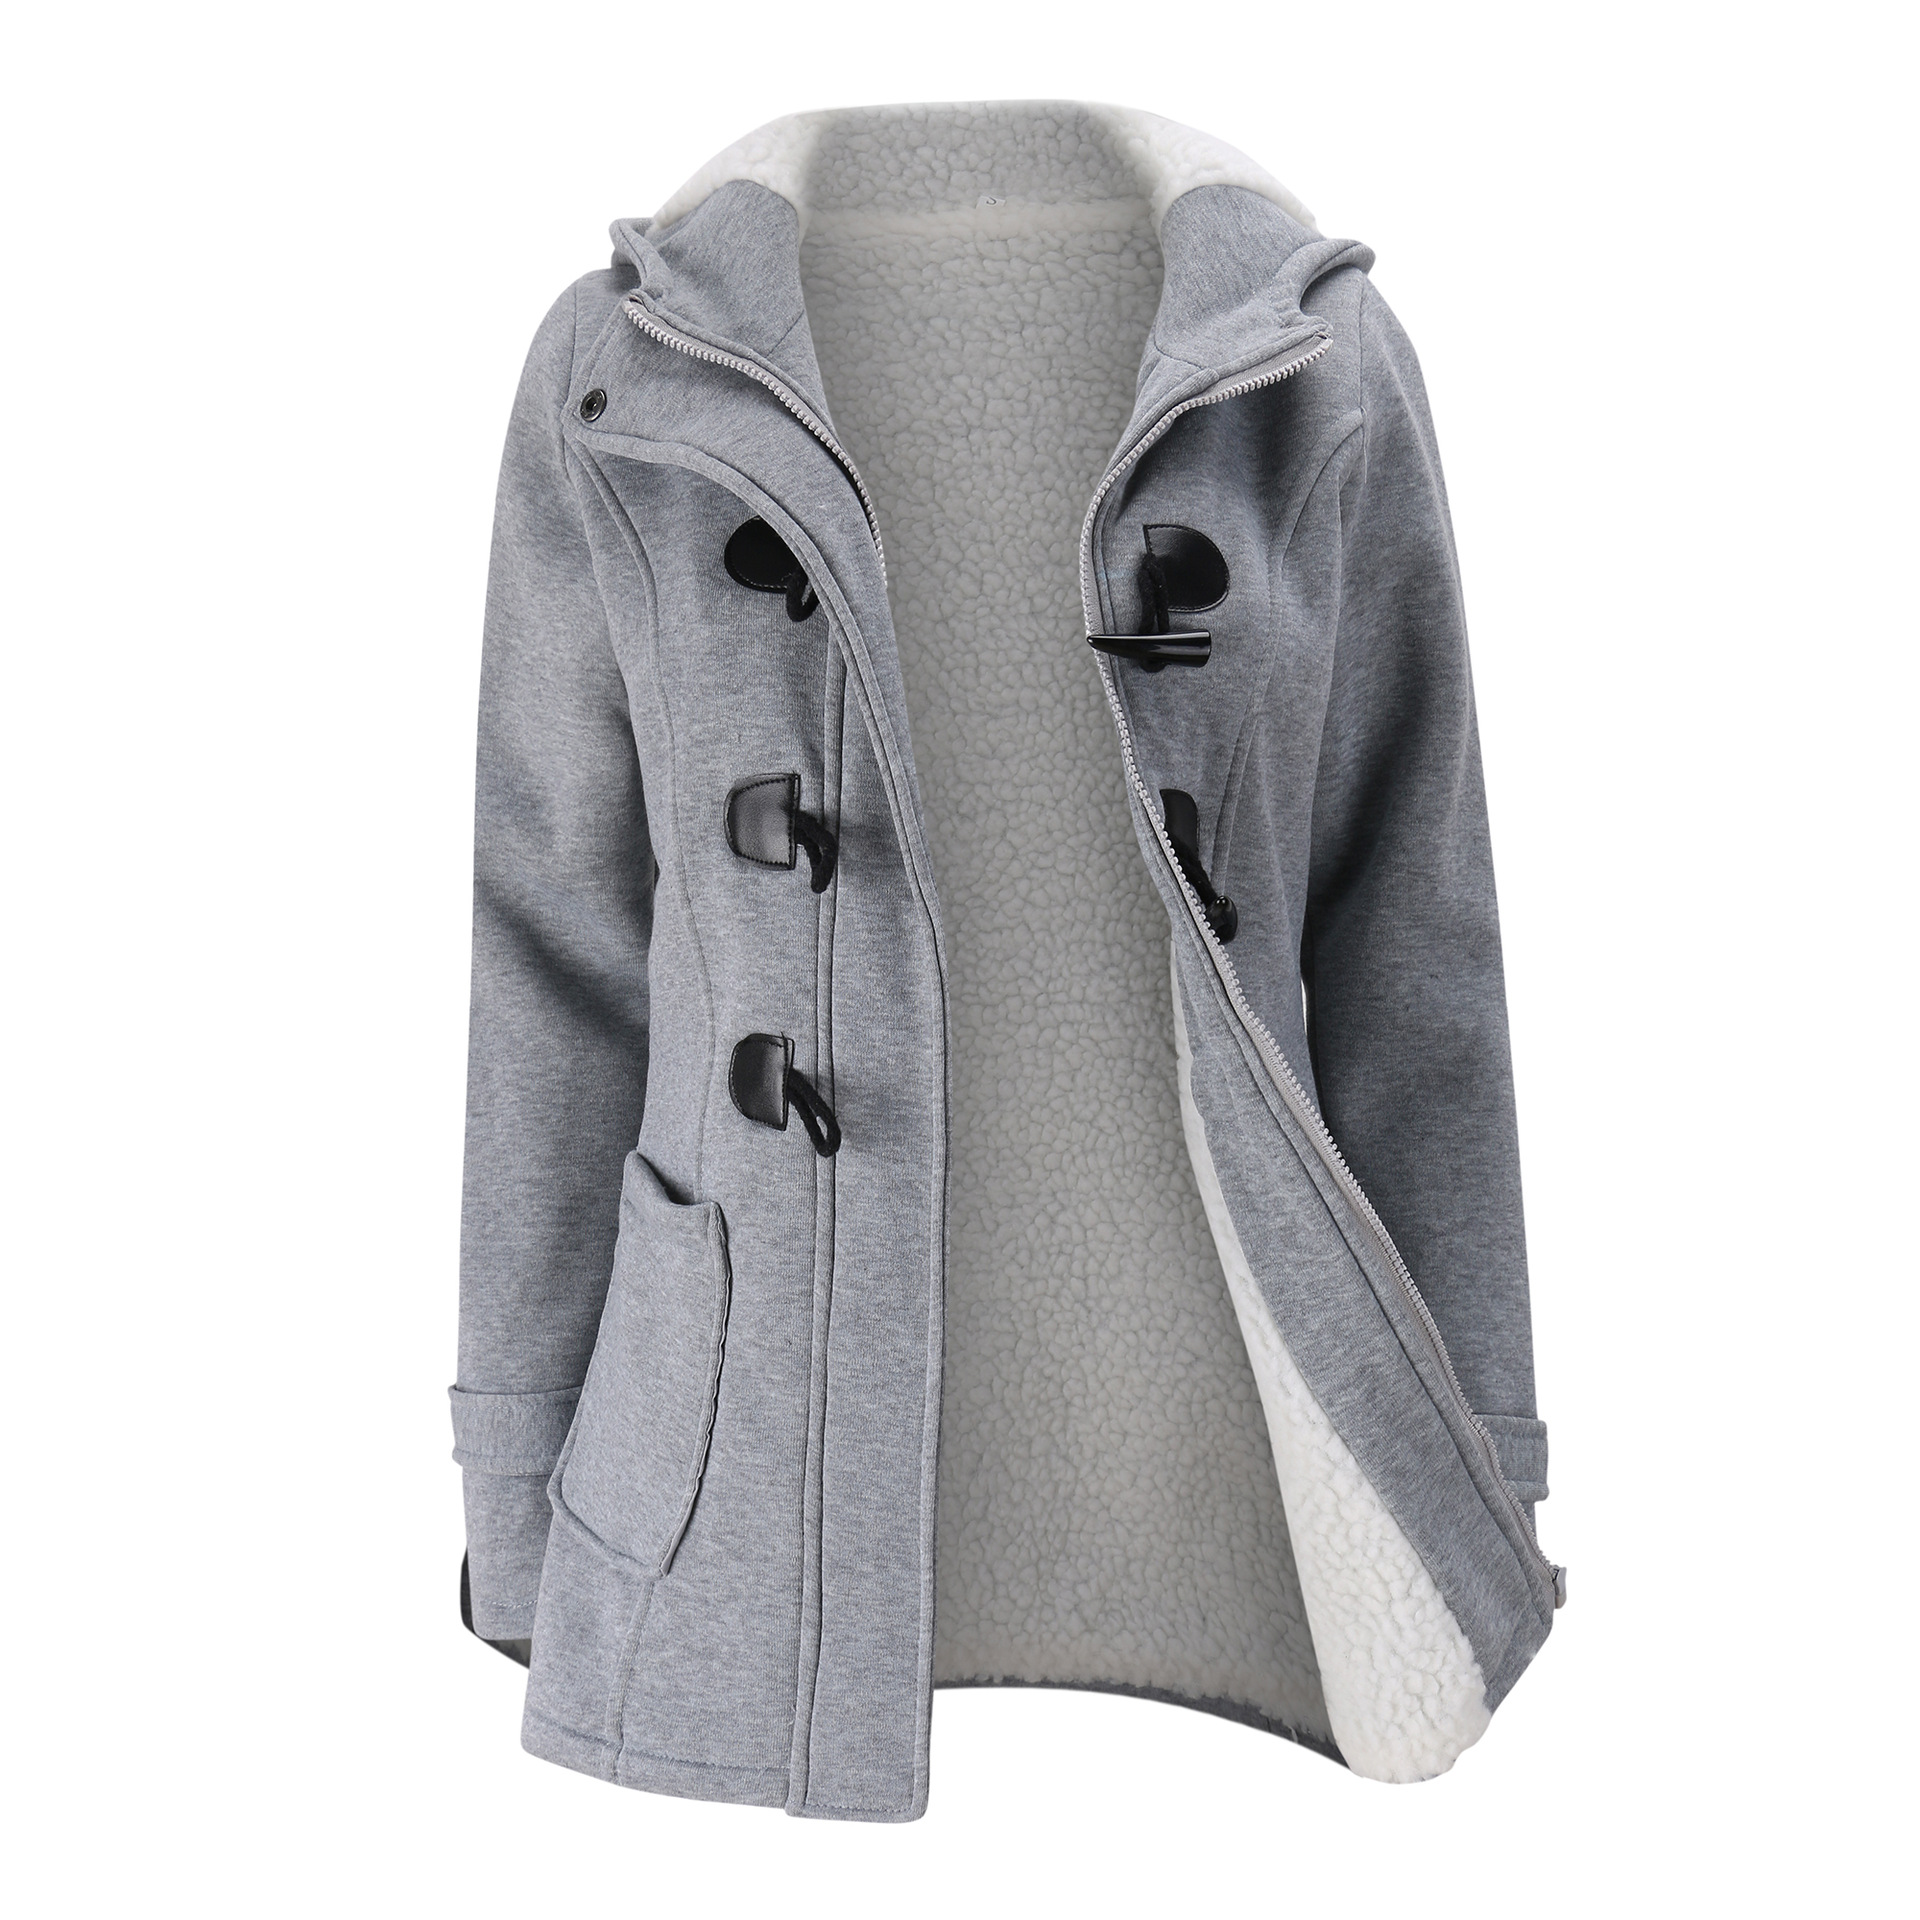 Hooded Winter   Parka   Women Thick Girl Oversized Snow Coat Cotton Jacket Fashion Long Overcoat Streetwear Female Solid Ladies Tops